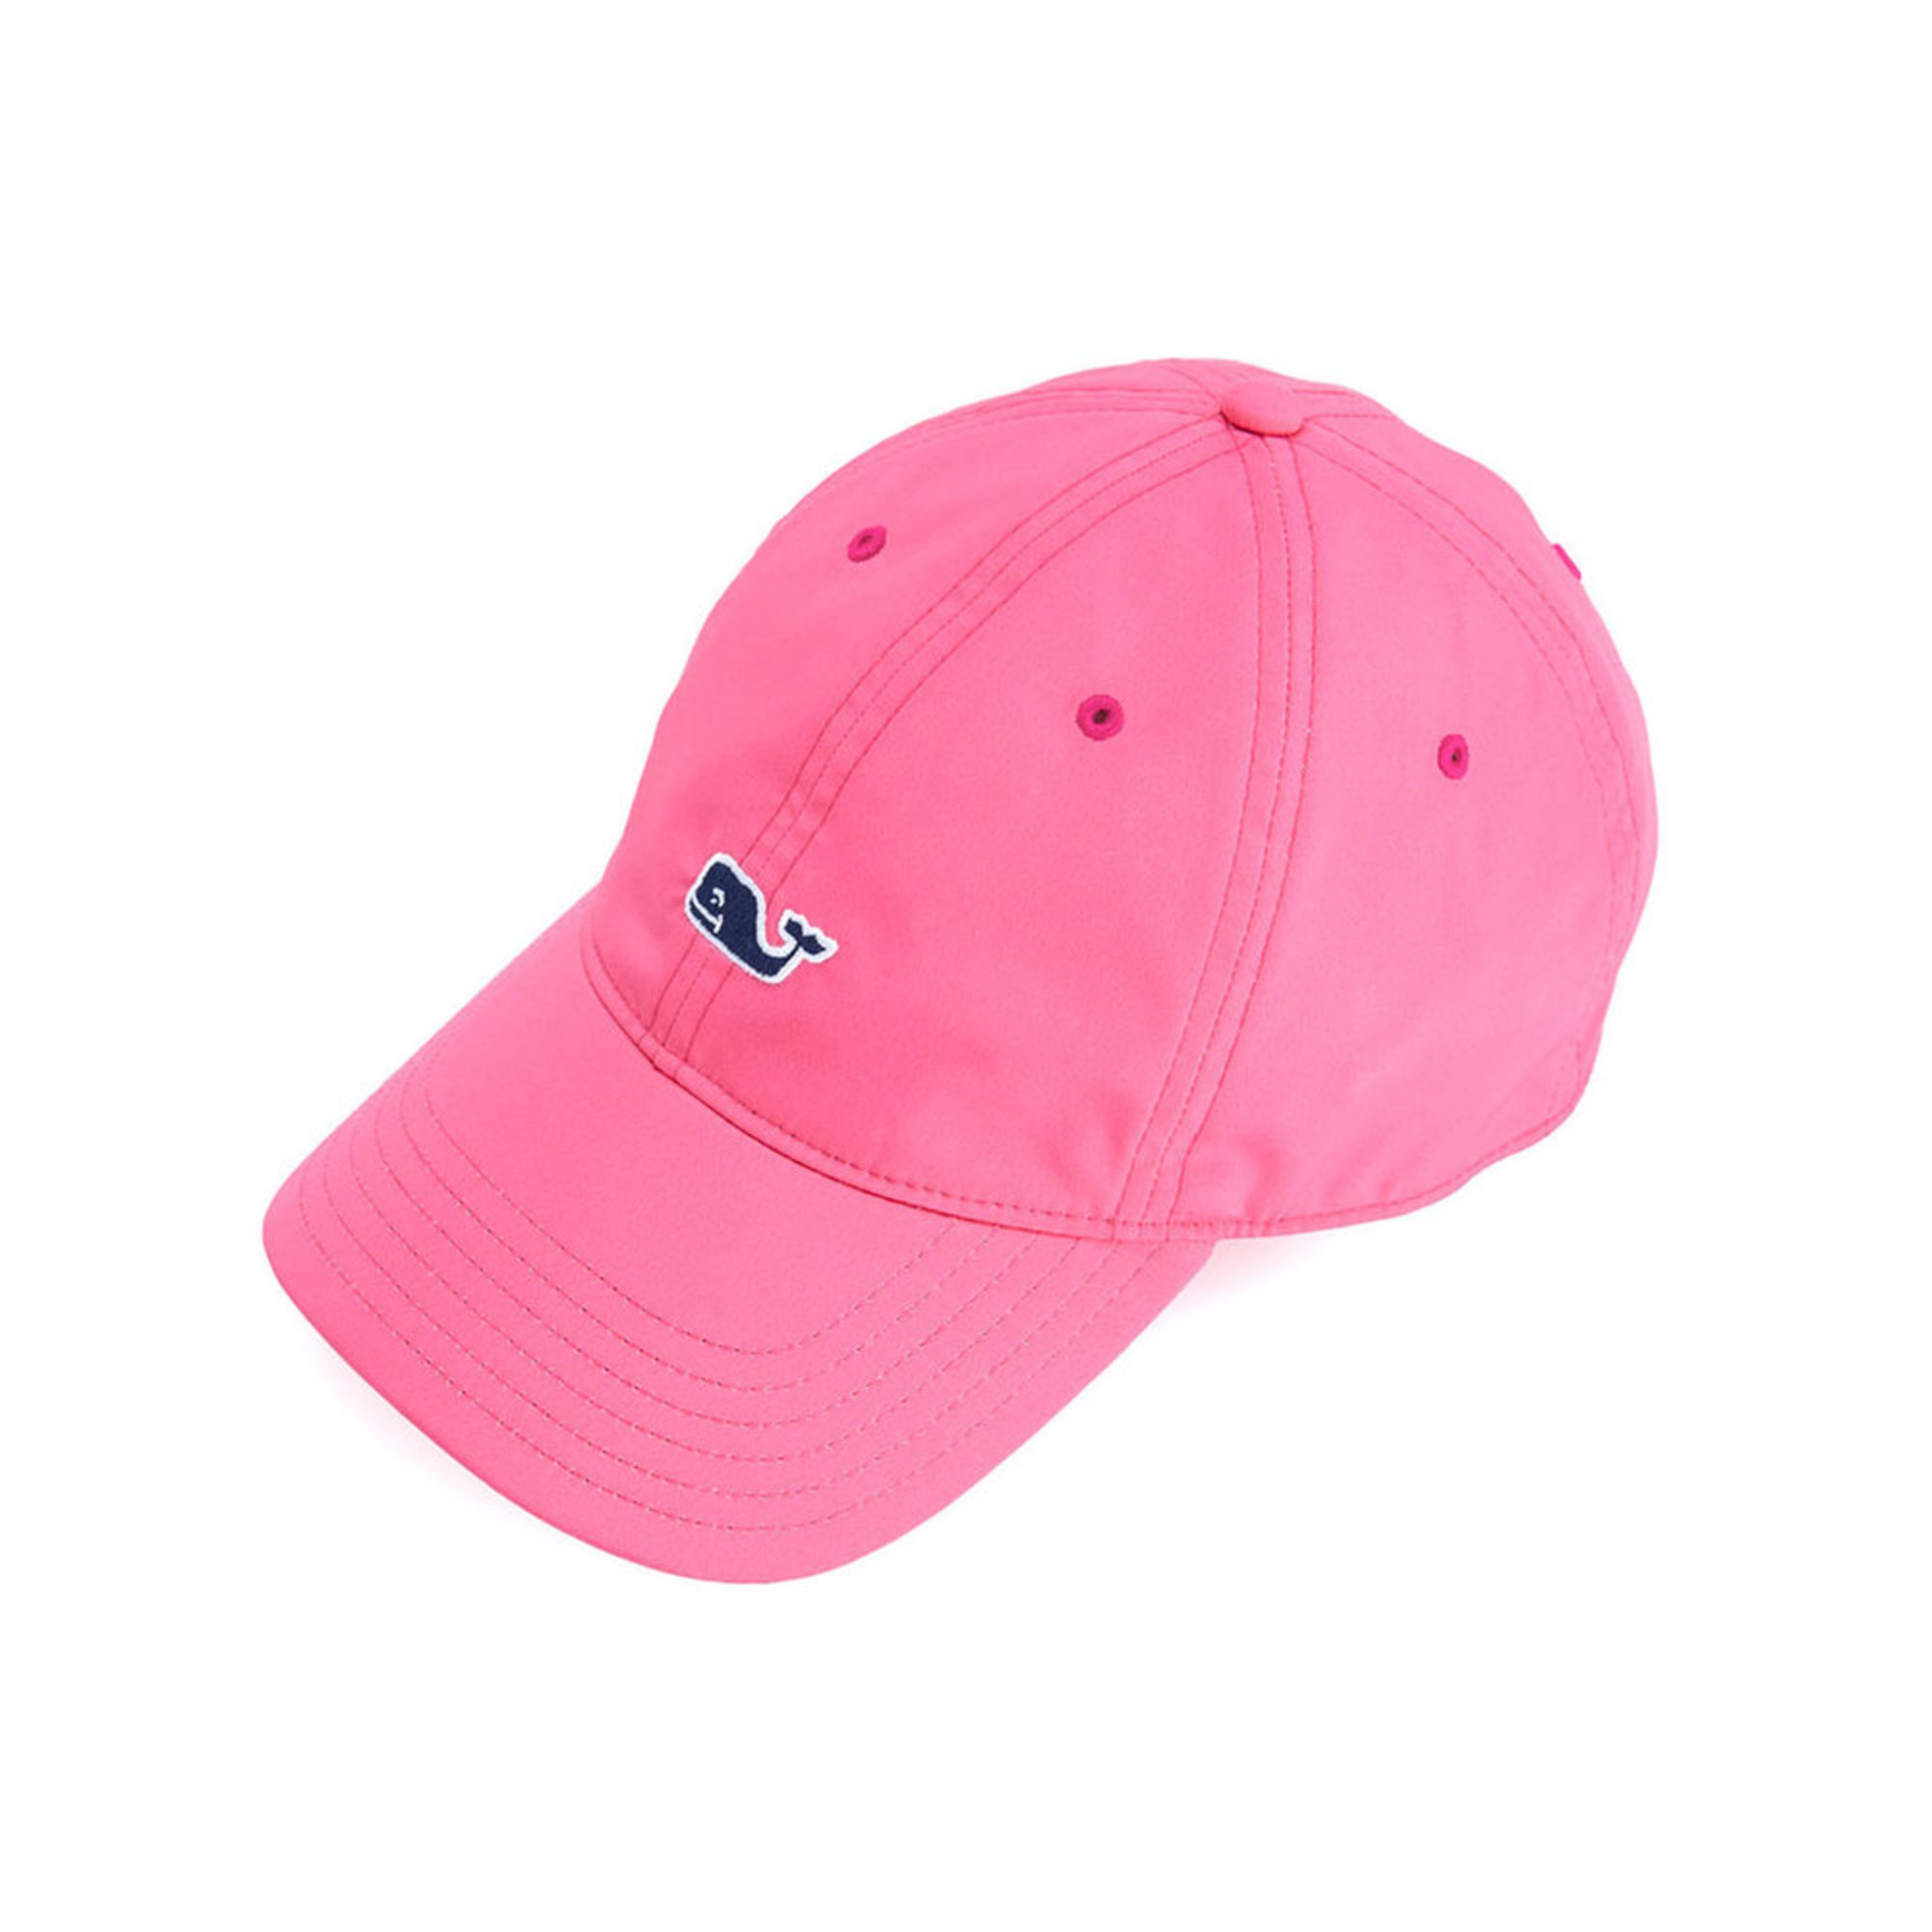 aa9528c8dc80 Vineyard Vines. Vineyard Vines Performance Baseball Hat In Rhododendron